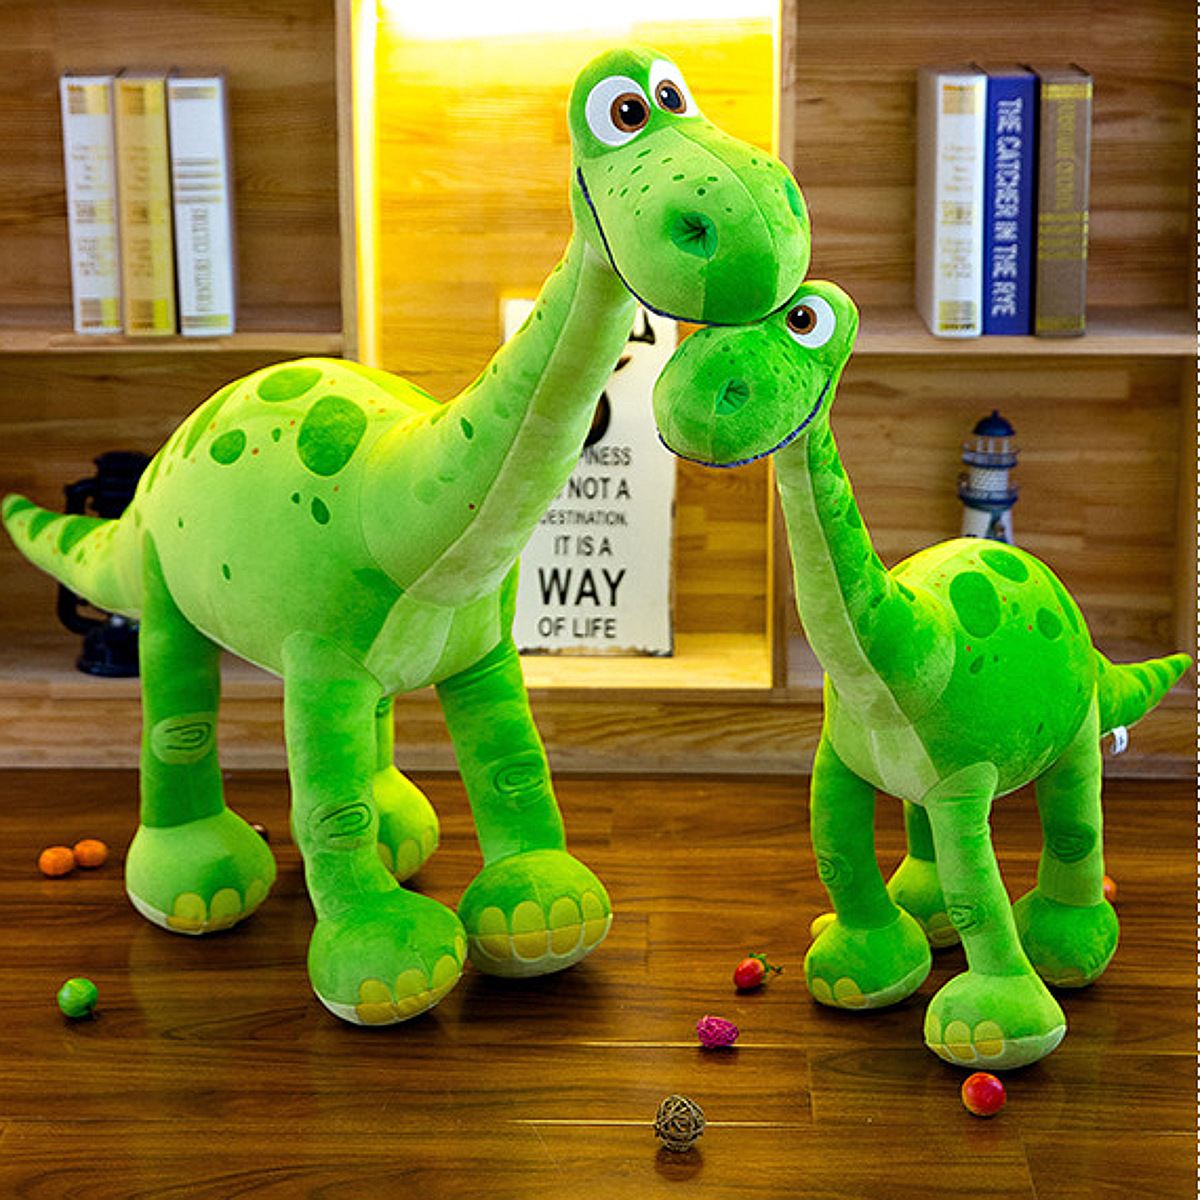 Green Dinosaur Arlo Stehend Soft Stuffed Plush Toy Doll Kids Xmas Gift